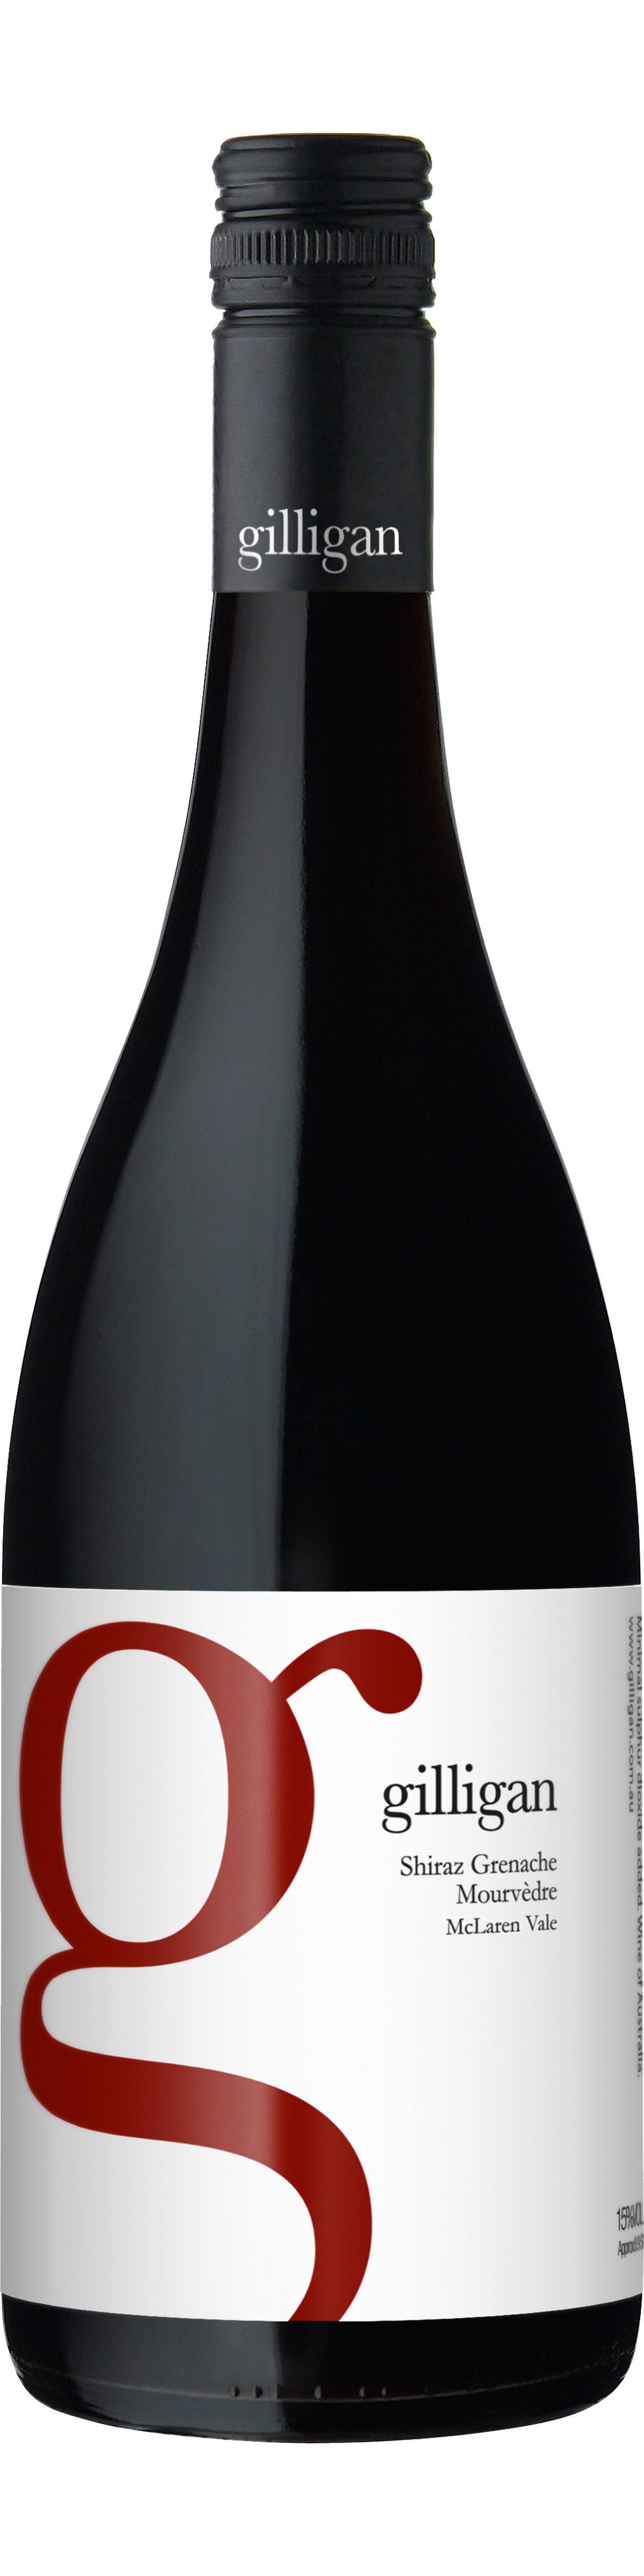 Image of product Shiraz Grenache Mourvèdre